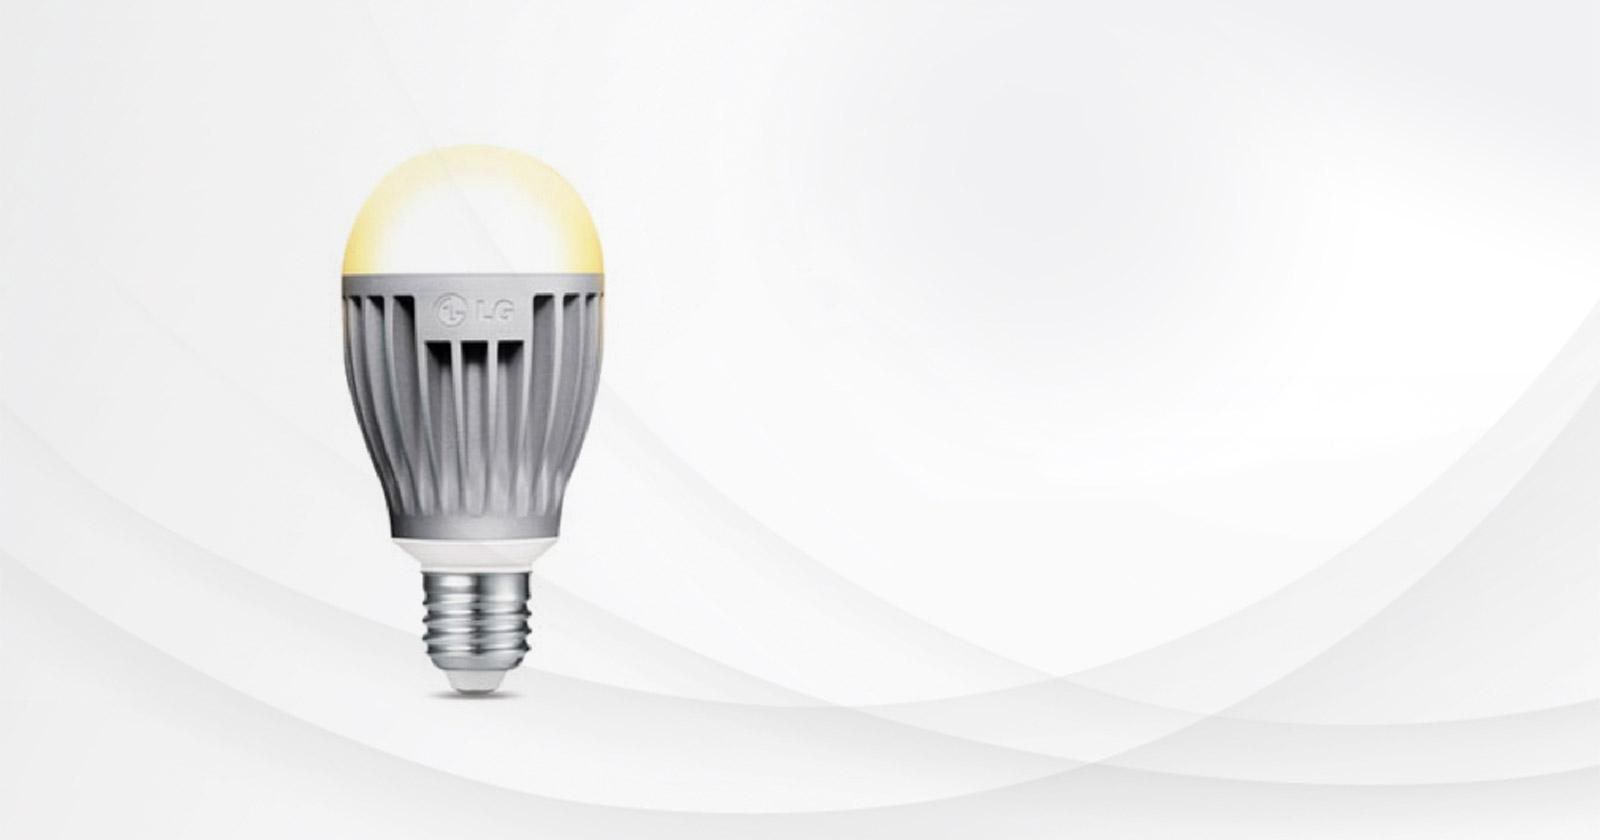 LG LED Lights: Long-Lasting LED Light Bulbs | LG USA